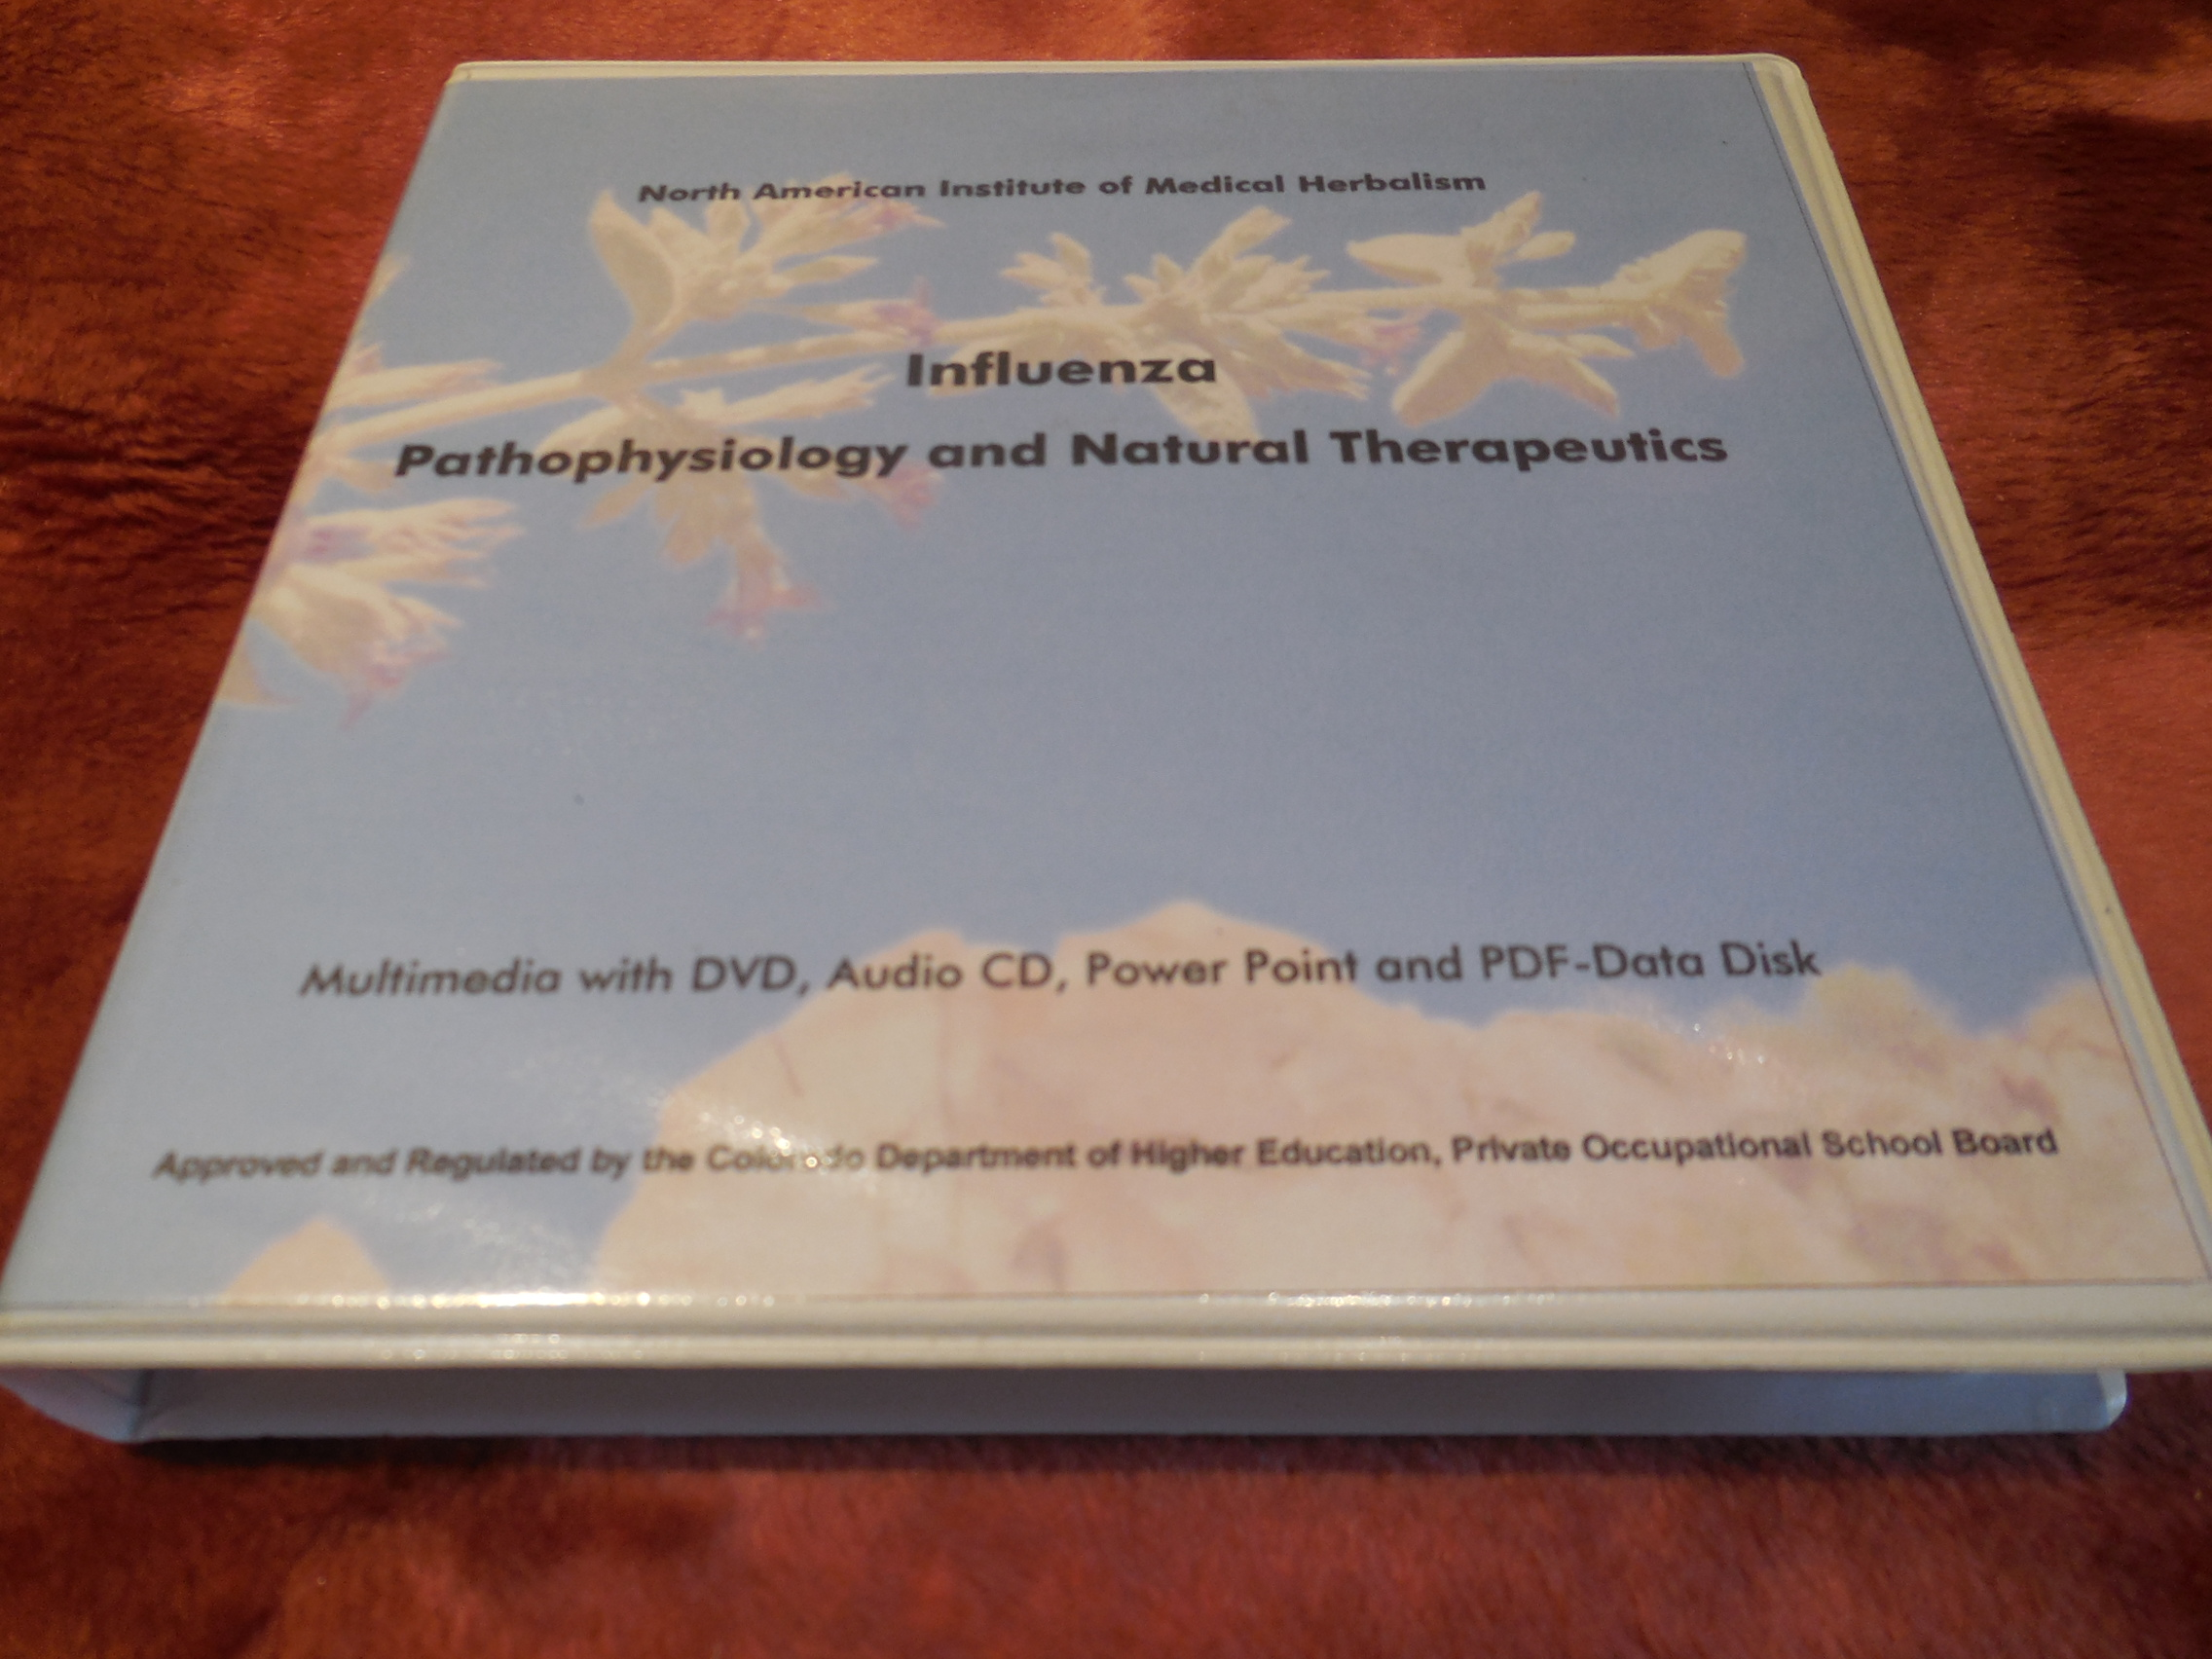 Image for Influenza: Pathophysiology and Natural Therapeutics (Multimedia with DVD, Audio CD, Power Point and PDF-Data Disk)